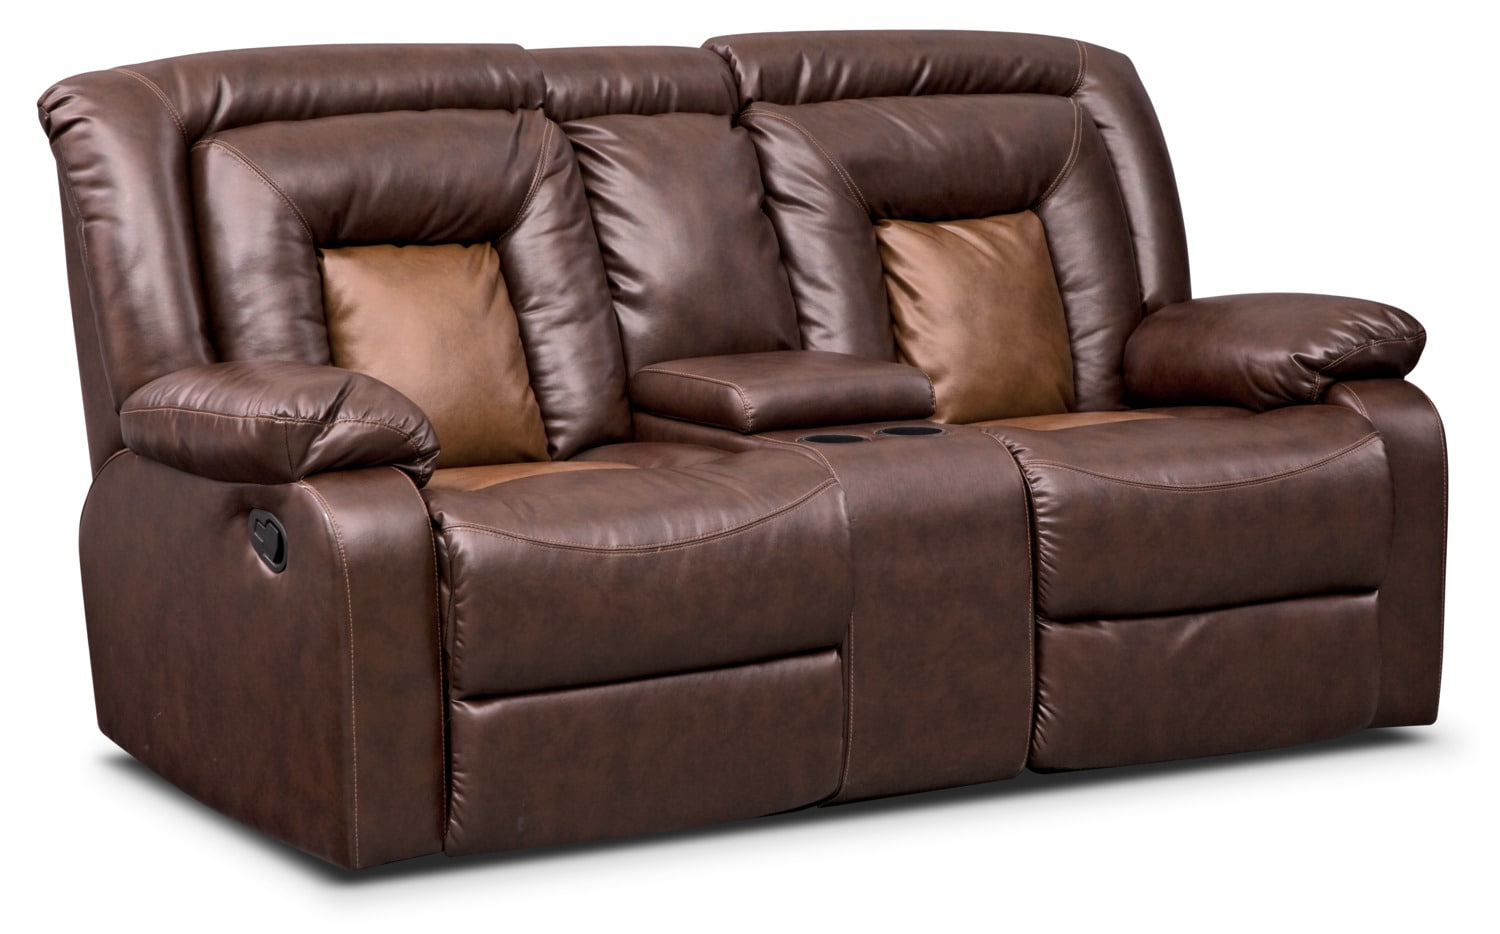 Mustang Dual Reclining Loveseat With Console Brown